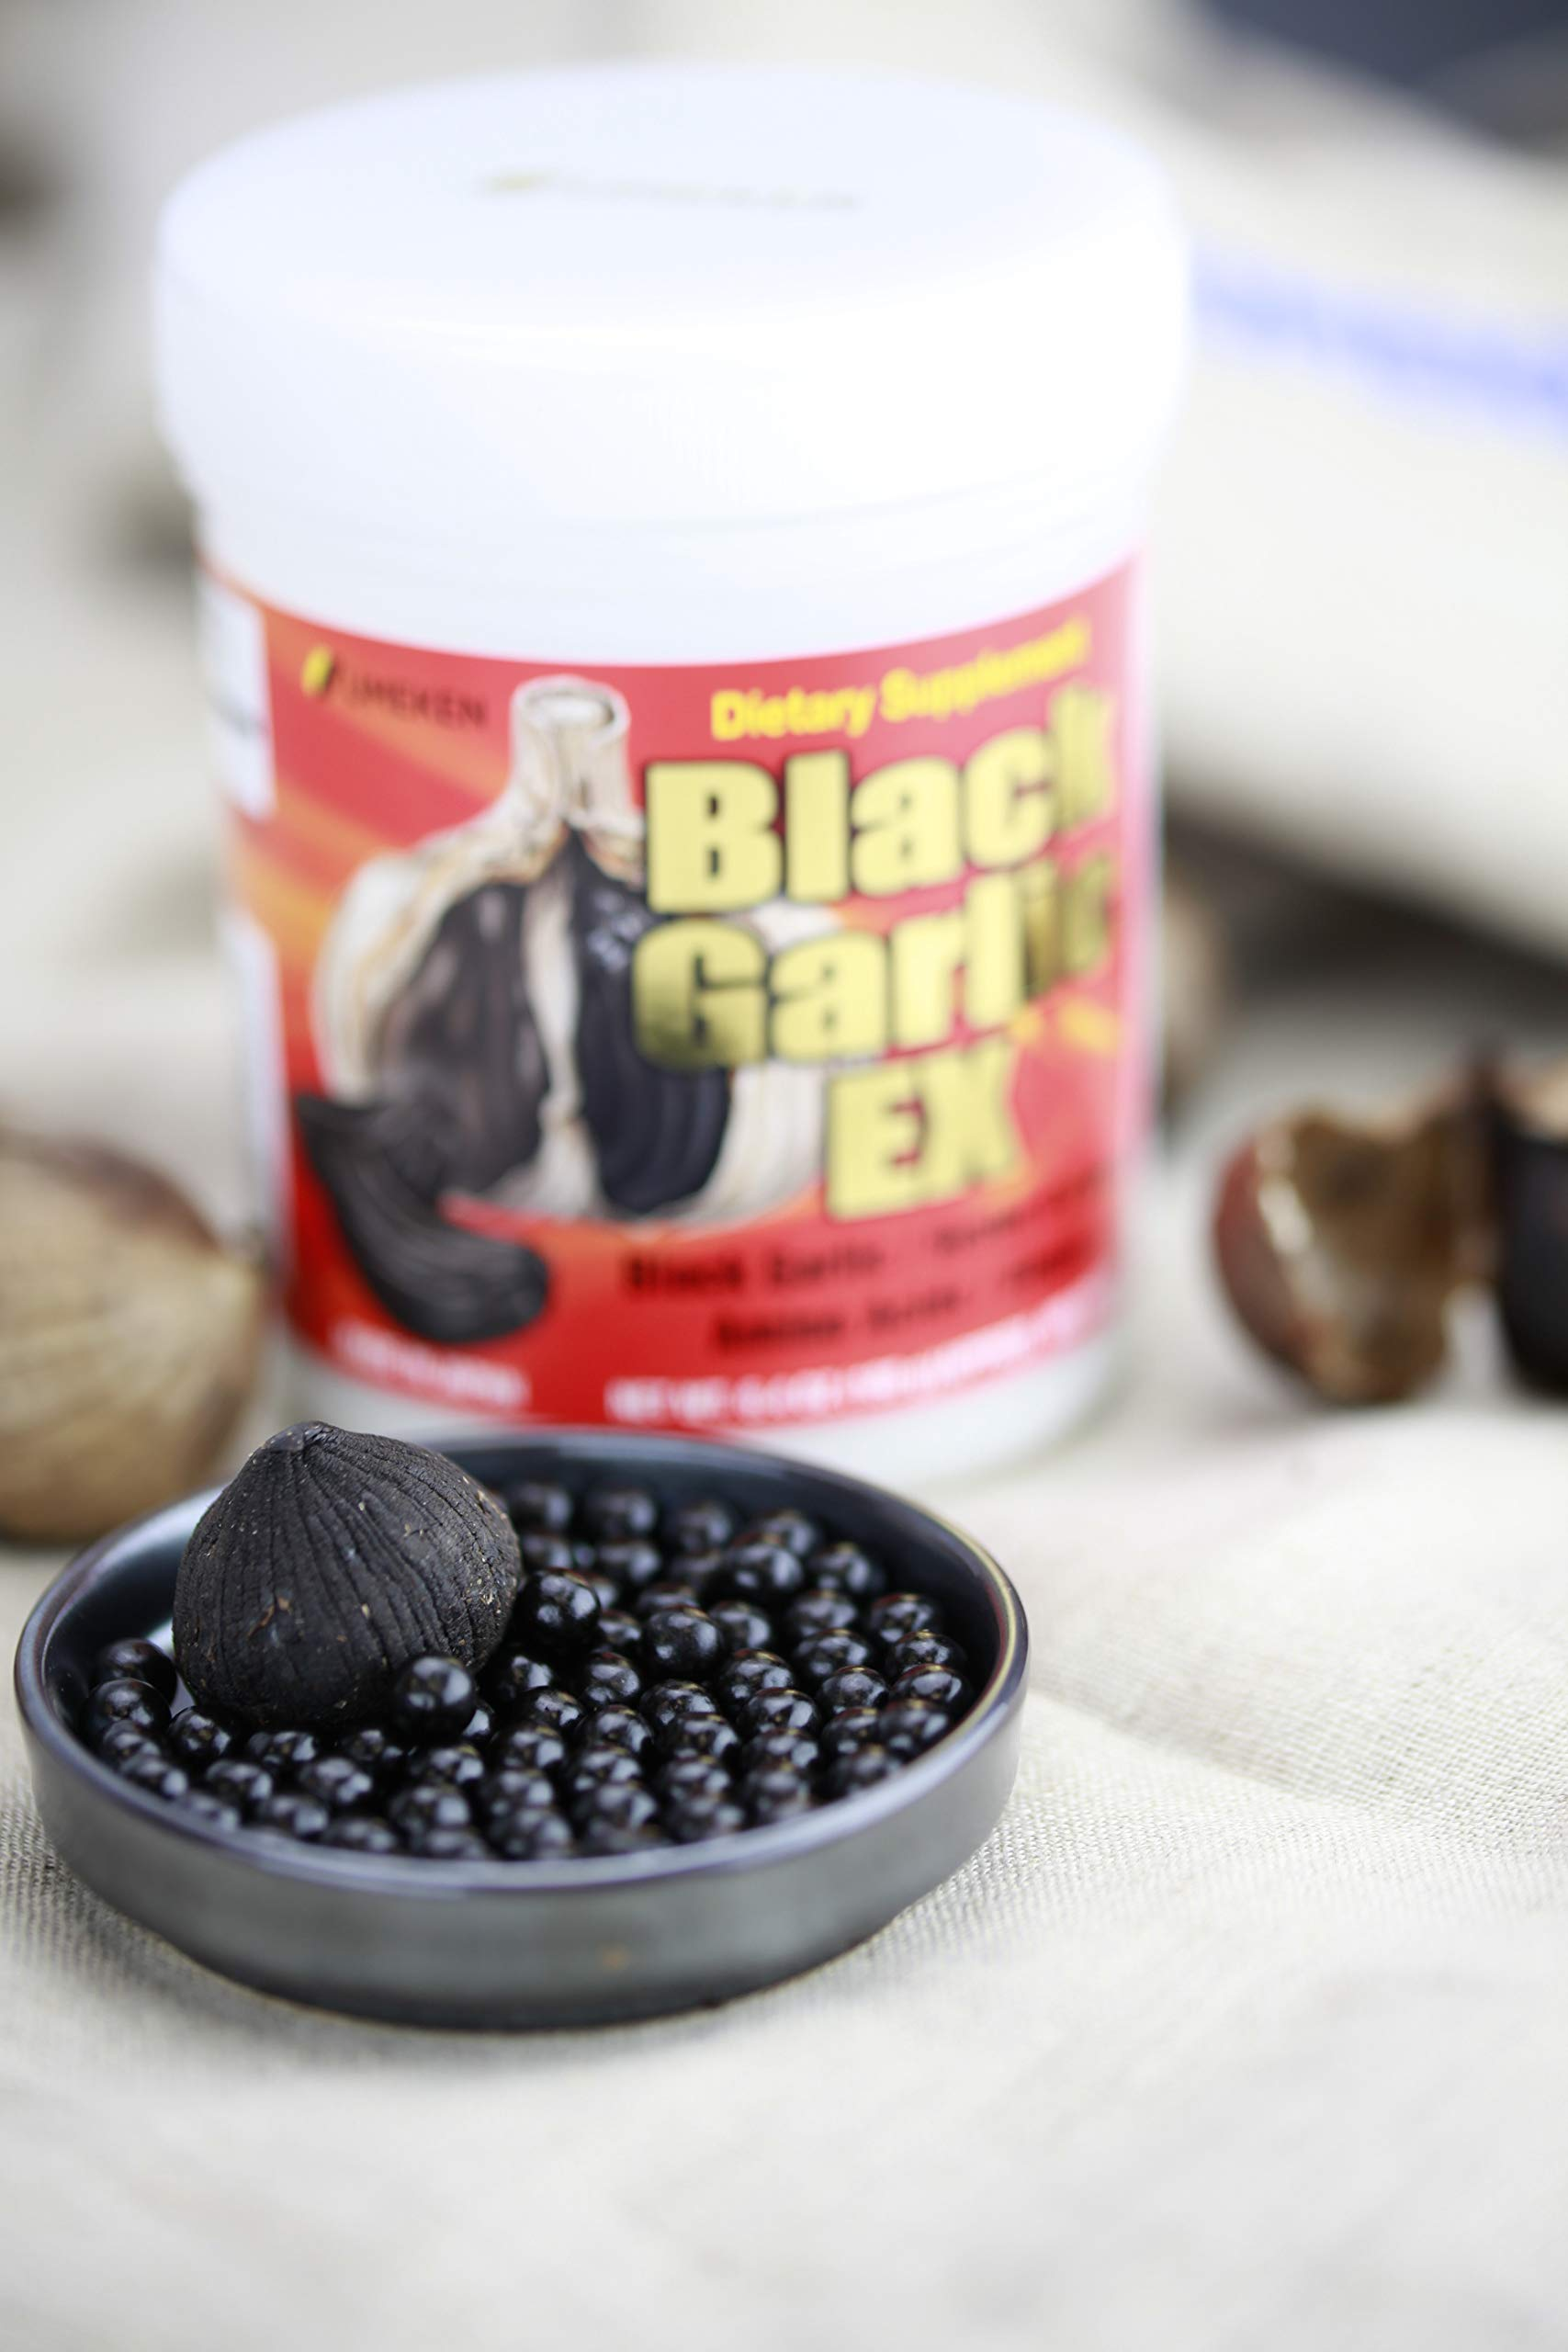 Umeken Black Garlic EX - Fermented Black Concentrated Garlic Extract - Rich in Vitamin B1, Allicin, Amino Acids. About 3 Month Supply. Made in Japan.